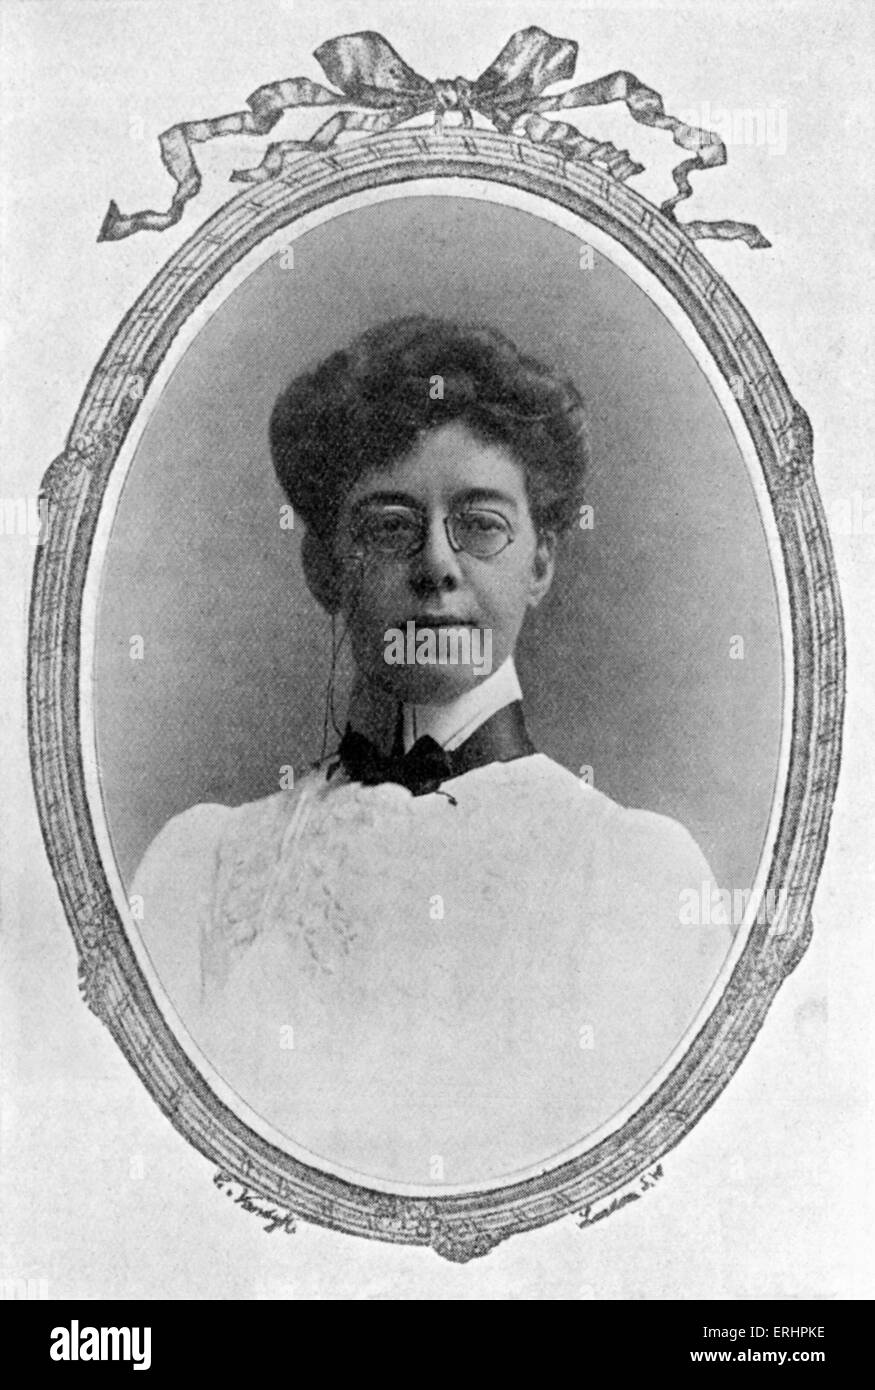 Mary Angela Dickens - - grand daughter of Charles Dickens. English novelist. 1861- 1946. - Stock Image